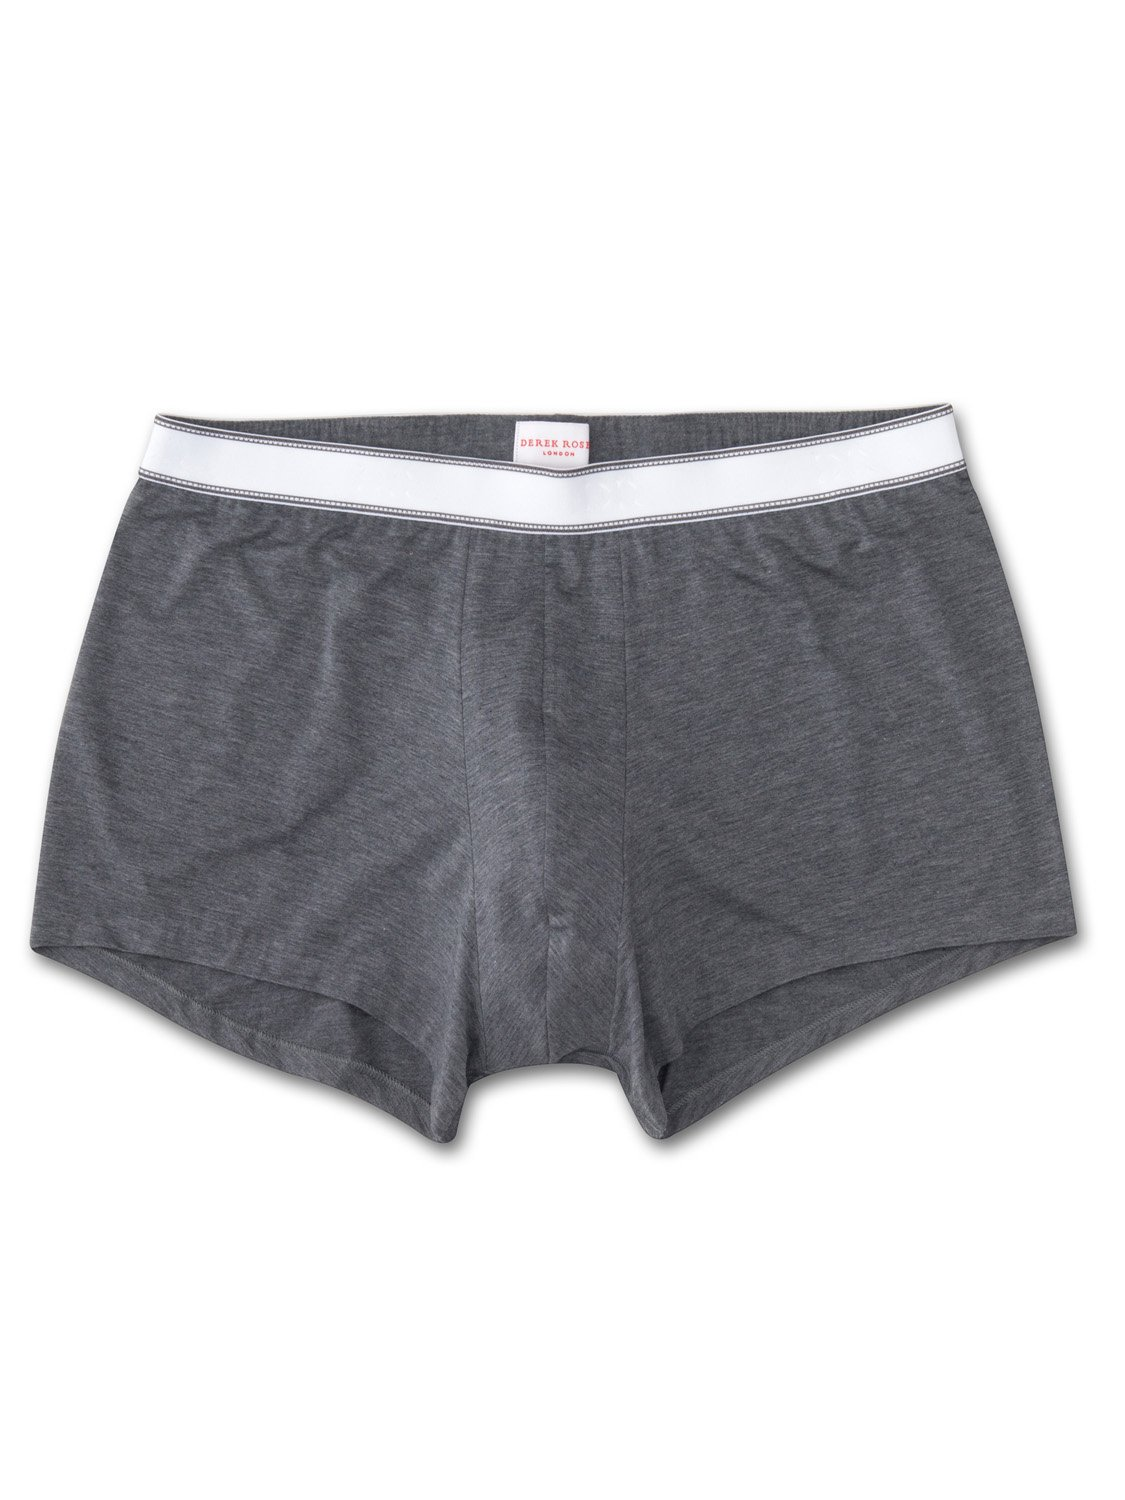 Men's Hipster Ethan 2 Micro Modal Stretch Charcoal